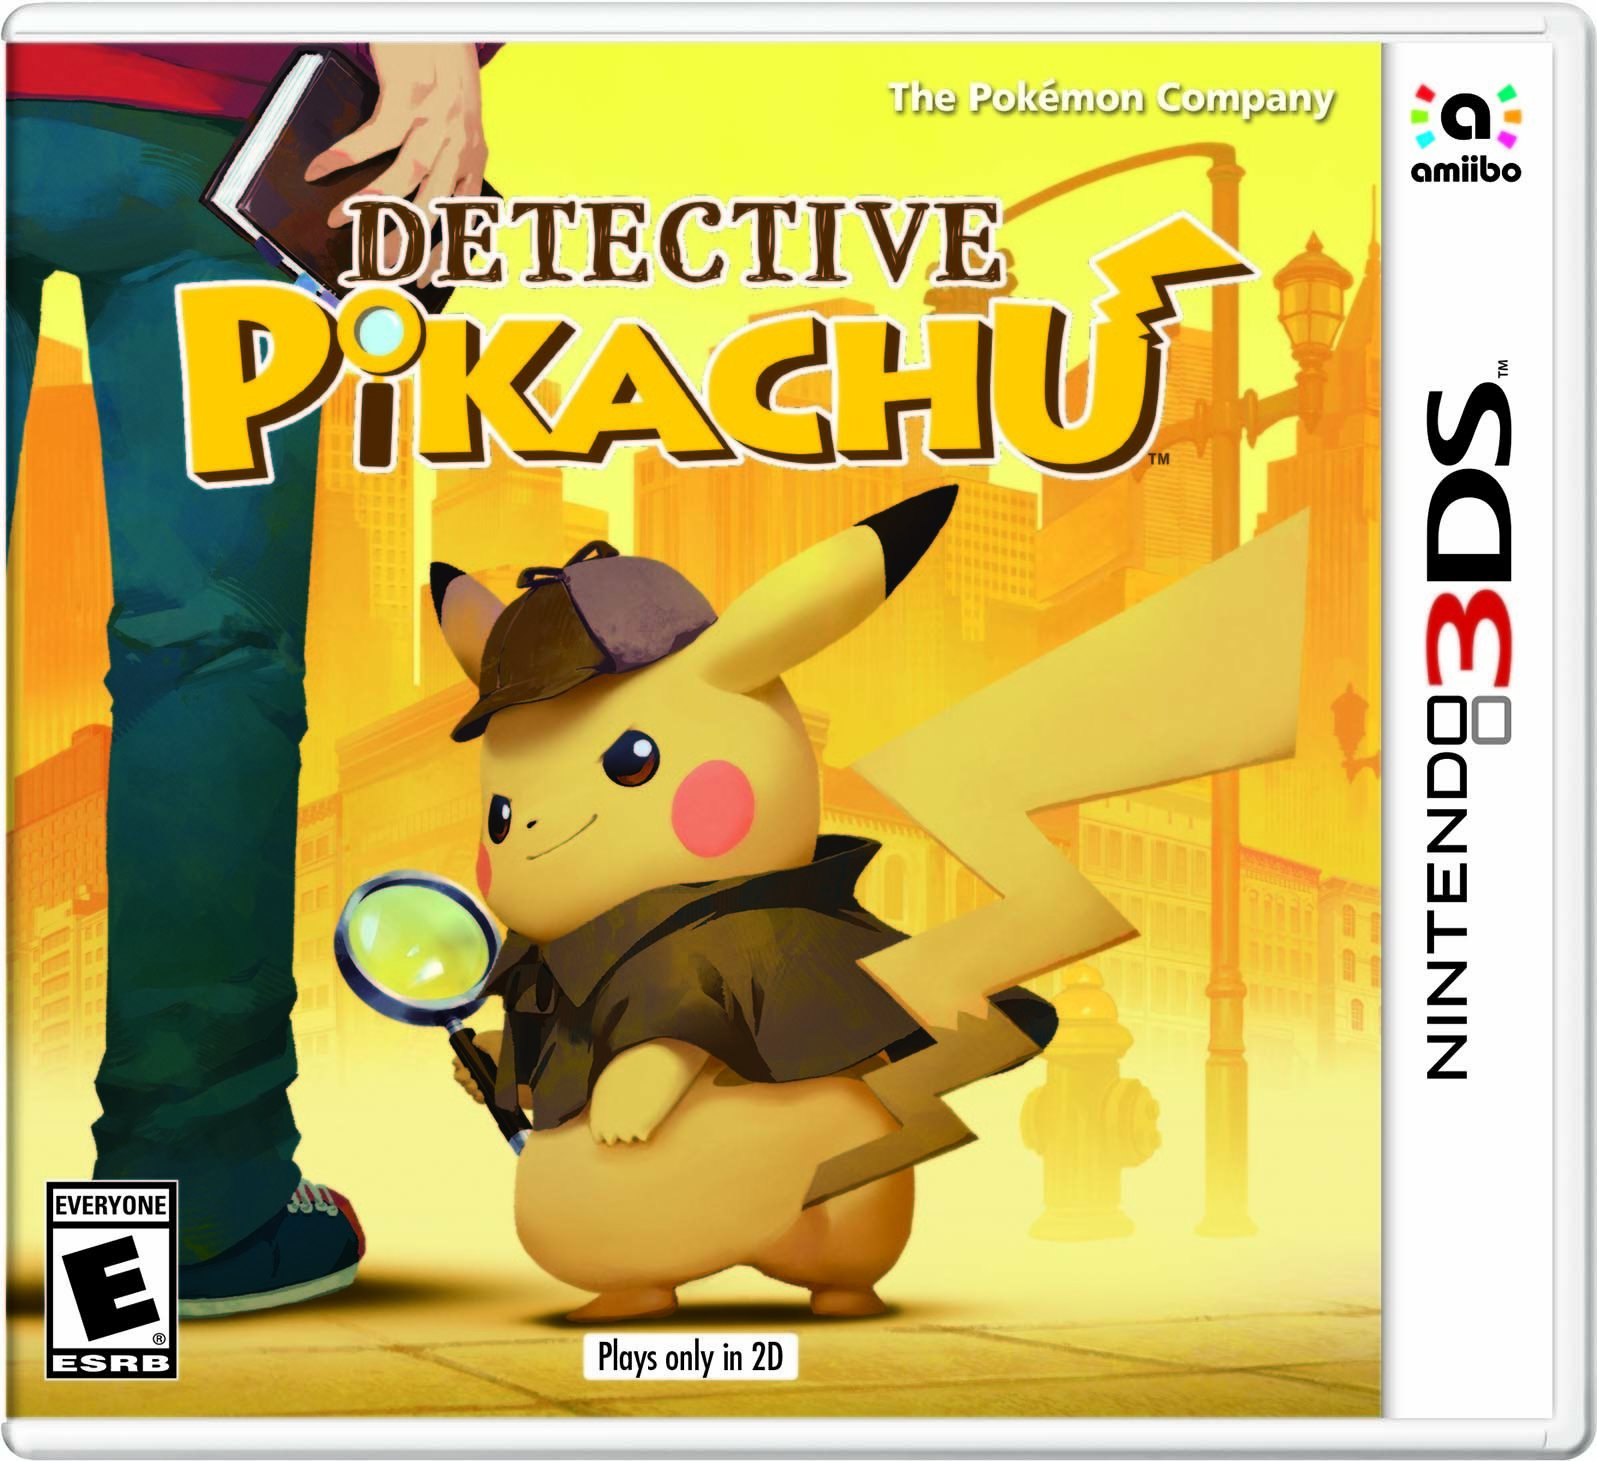 http://www.perfectly-nintendo.com/wp-content/gallery/detective-pikachu-12-01-2018/4.jpg